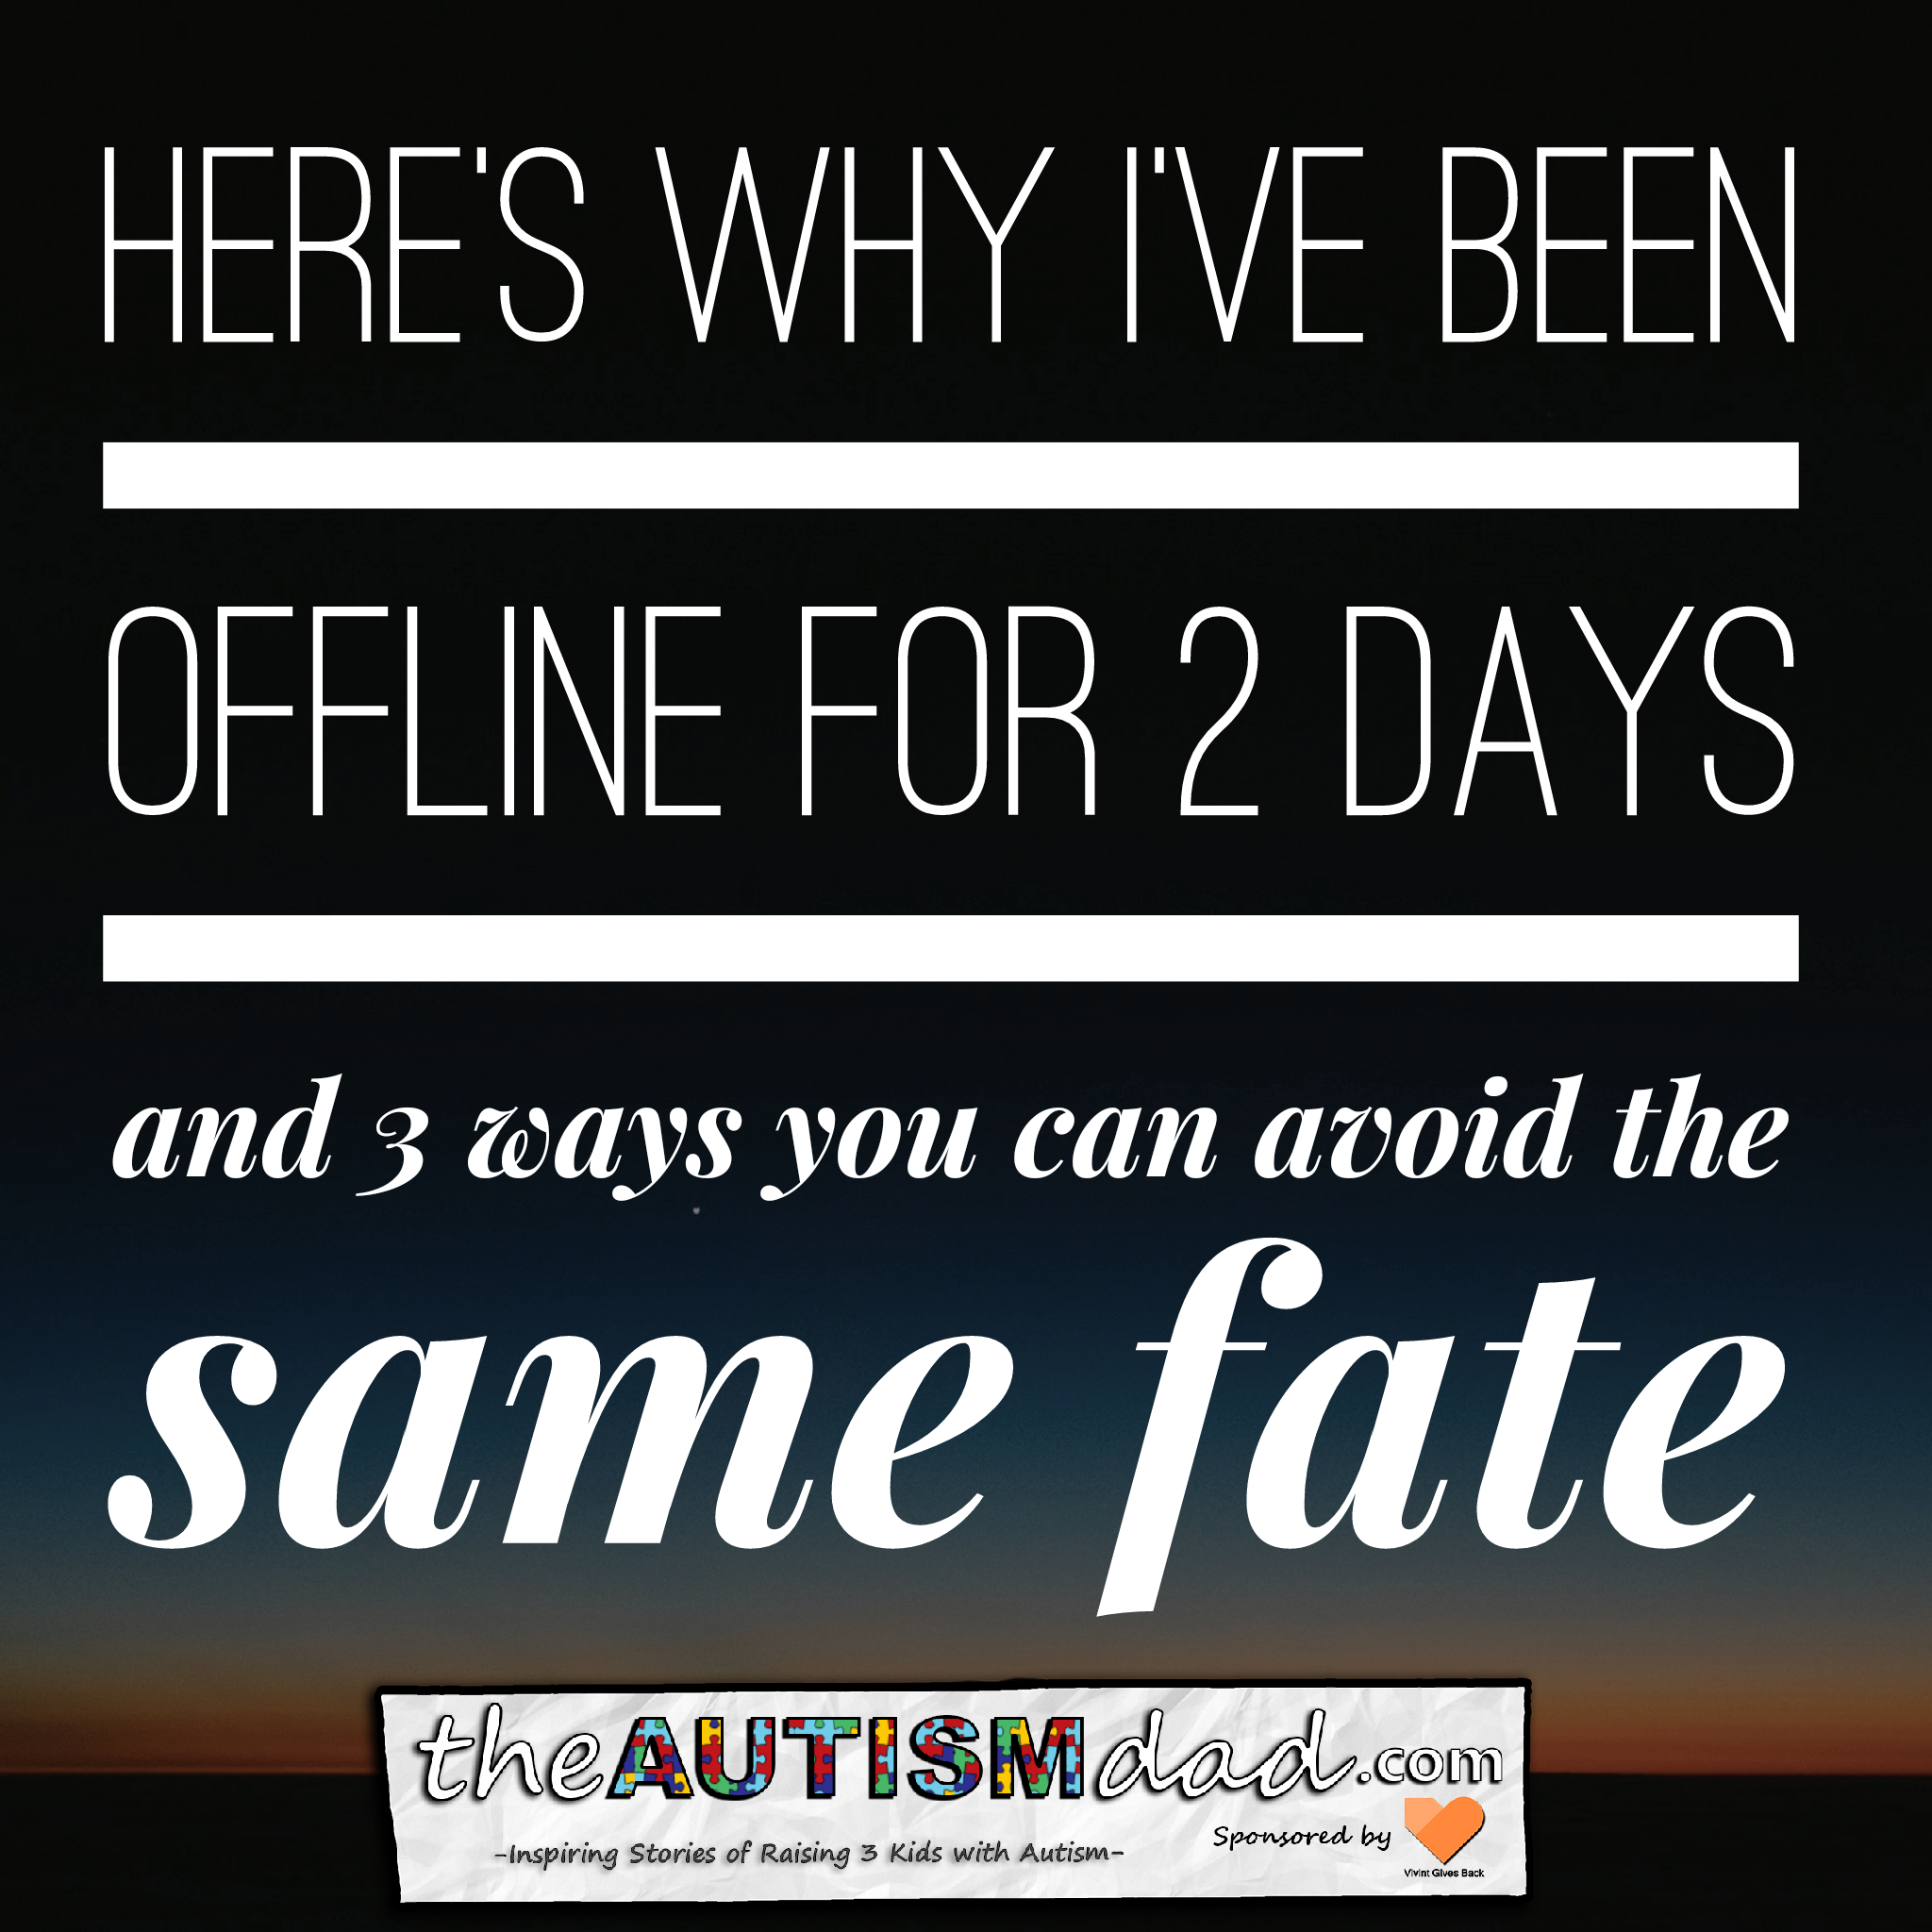 Here's why I've been offline for 2 days as well as 3 ways you can avoid the same fate